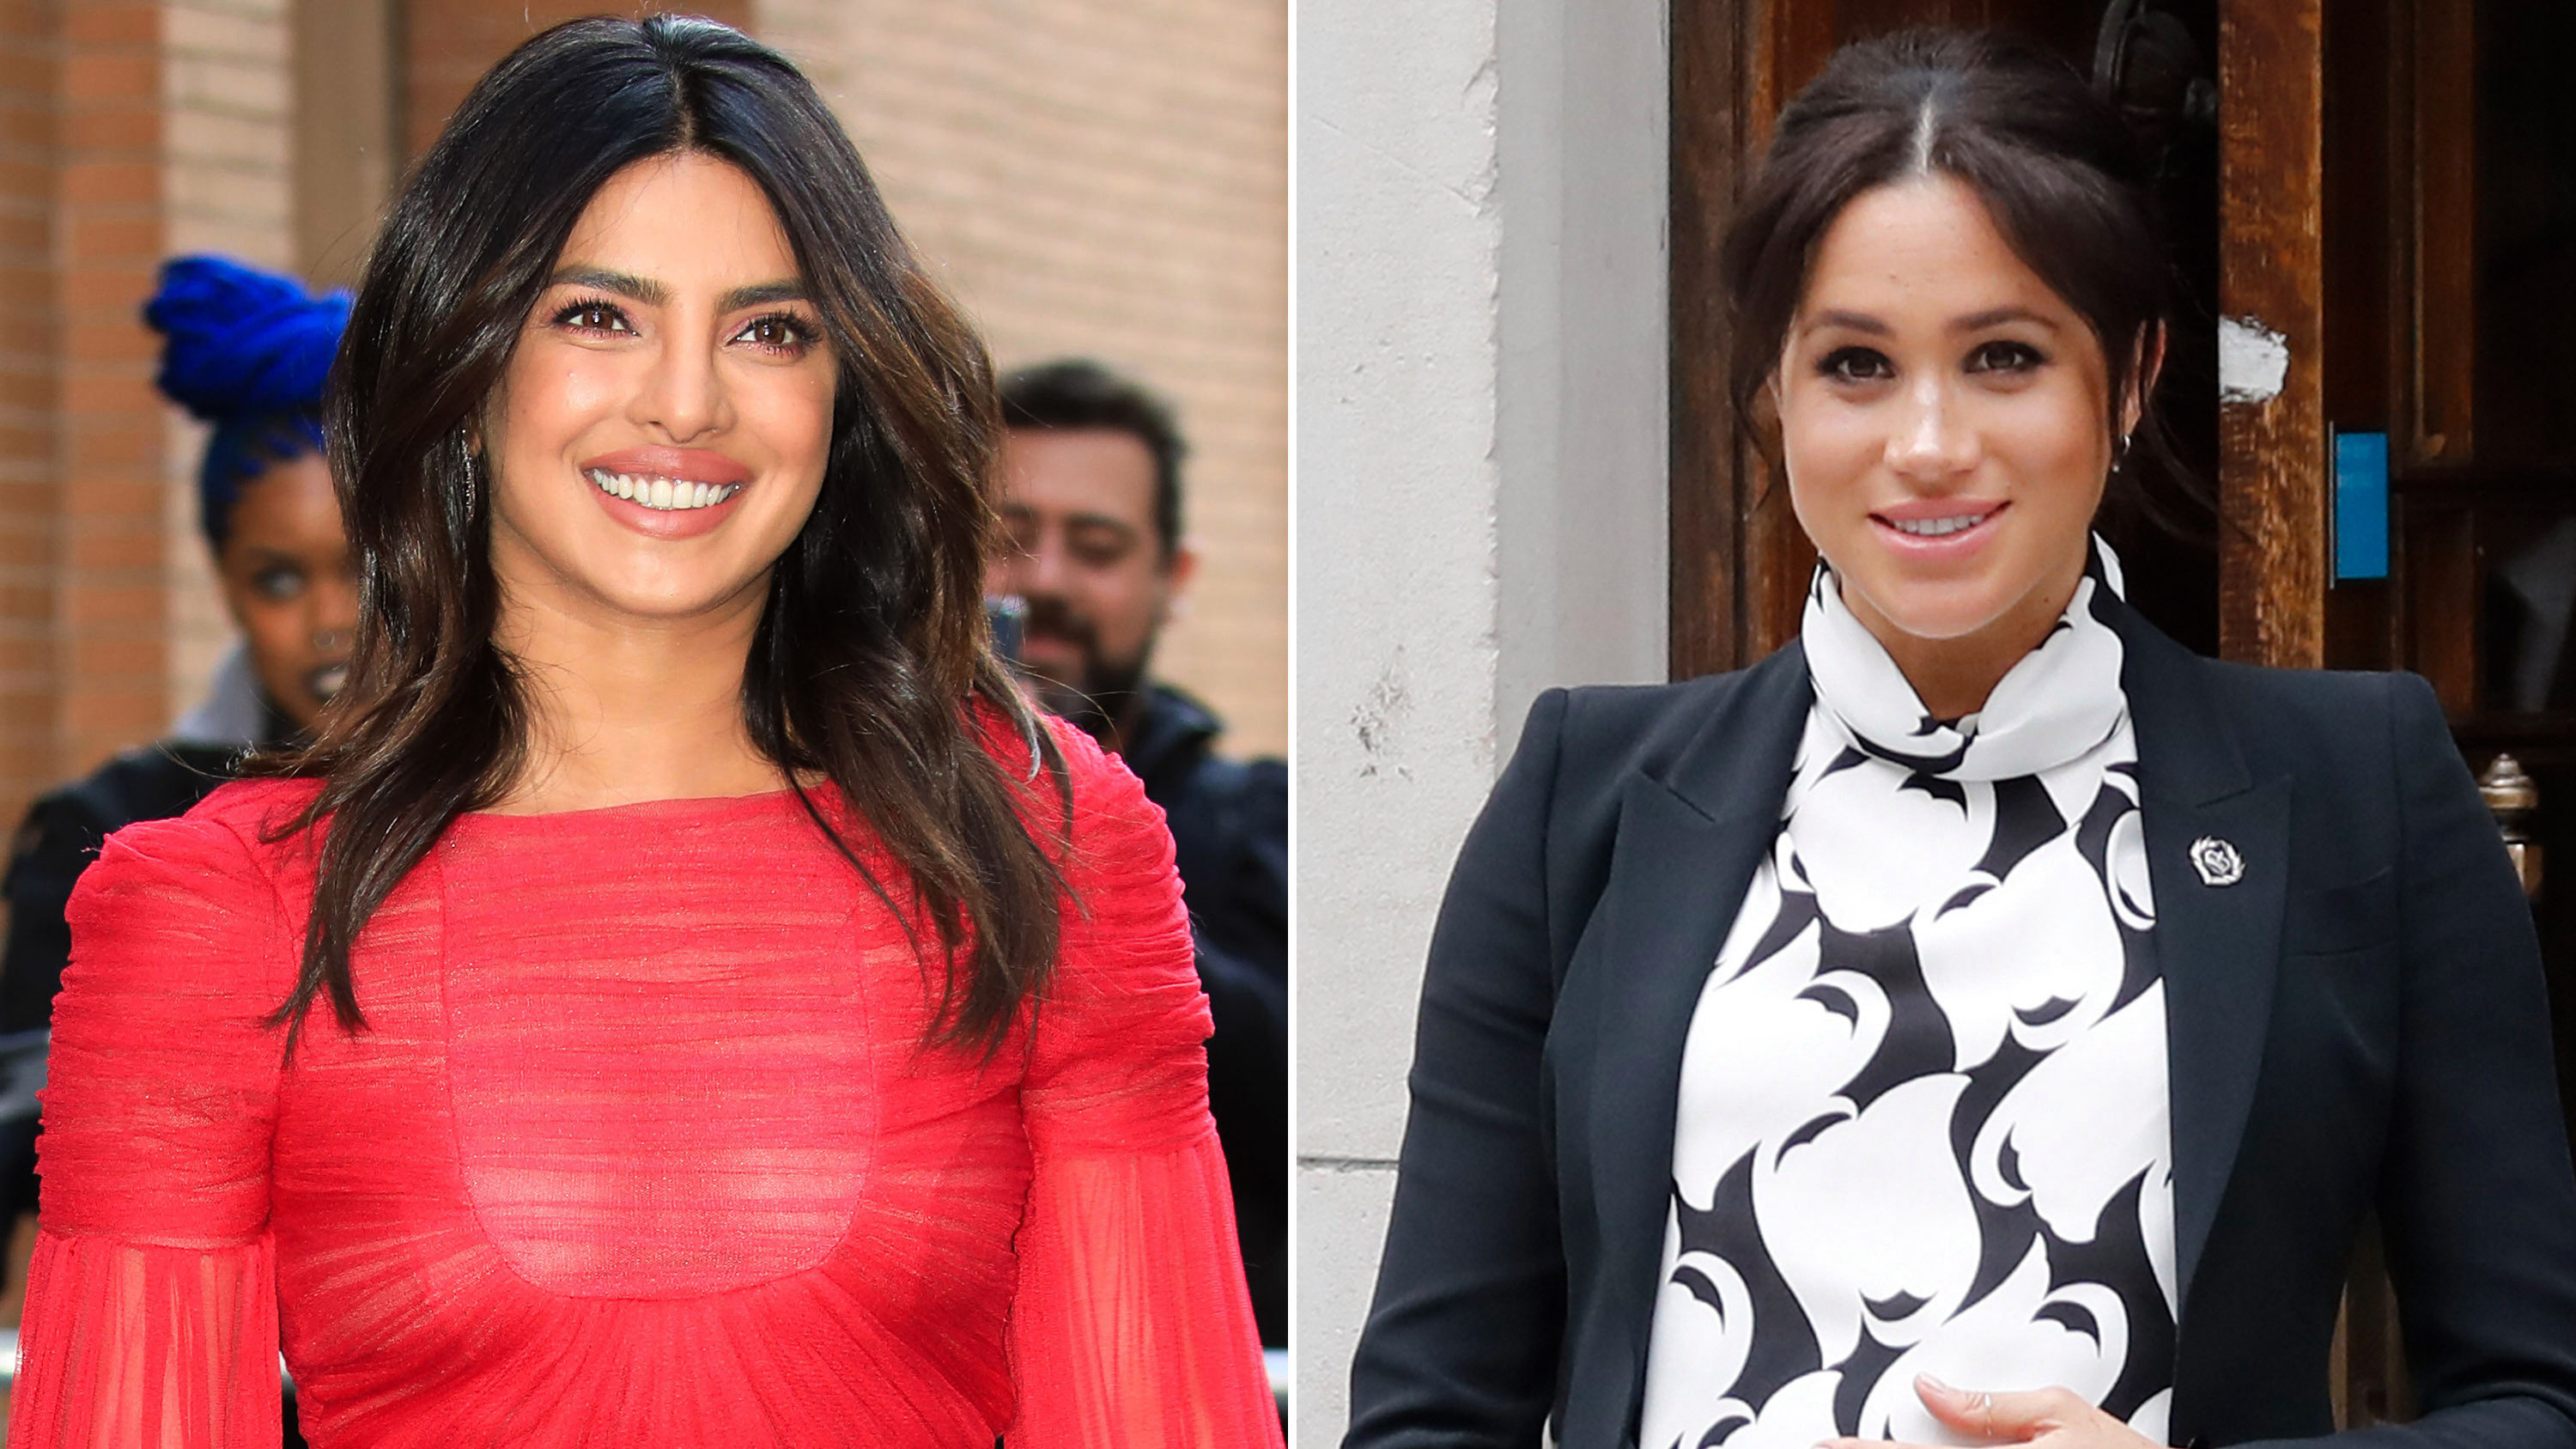 Priyanka Chopra Megan Markle Duchess of Sussex